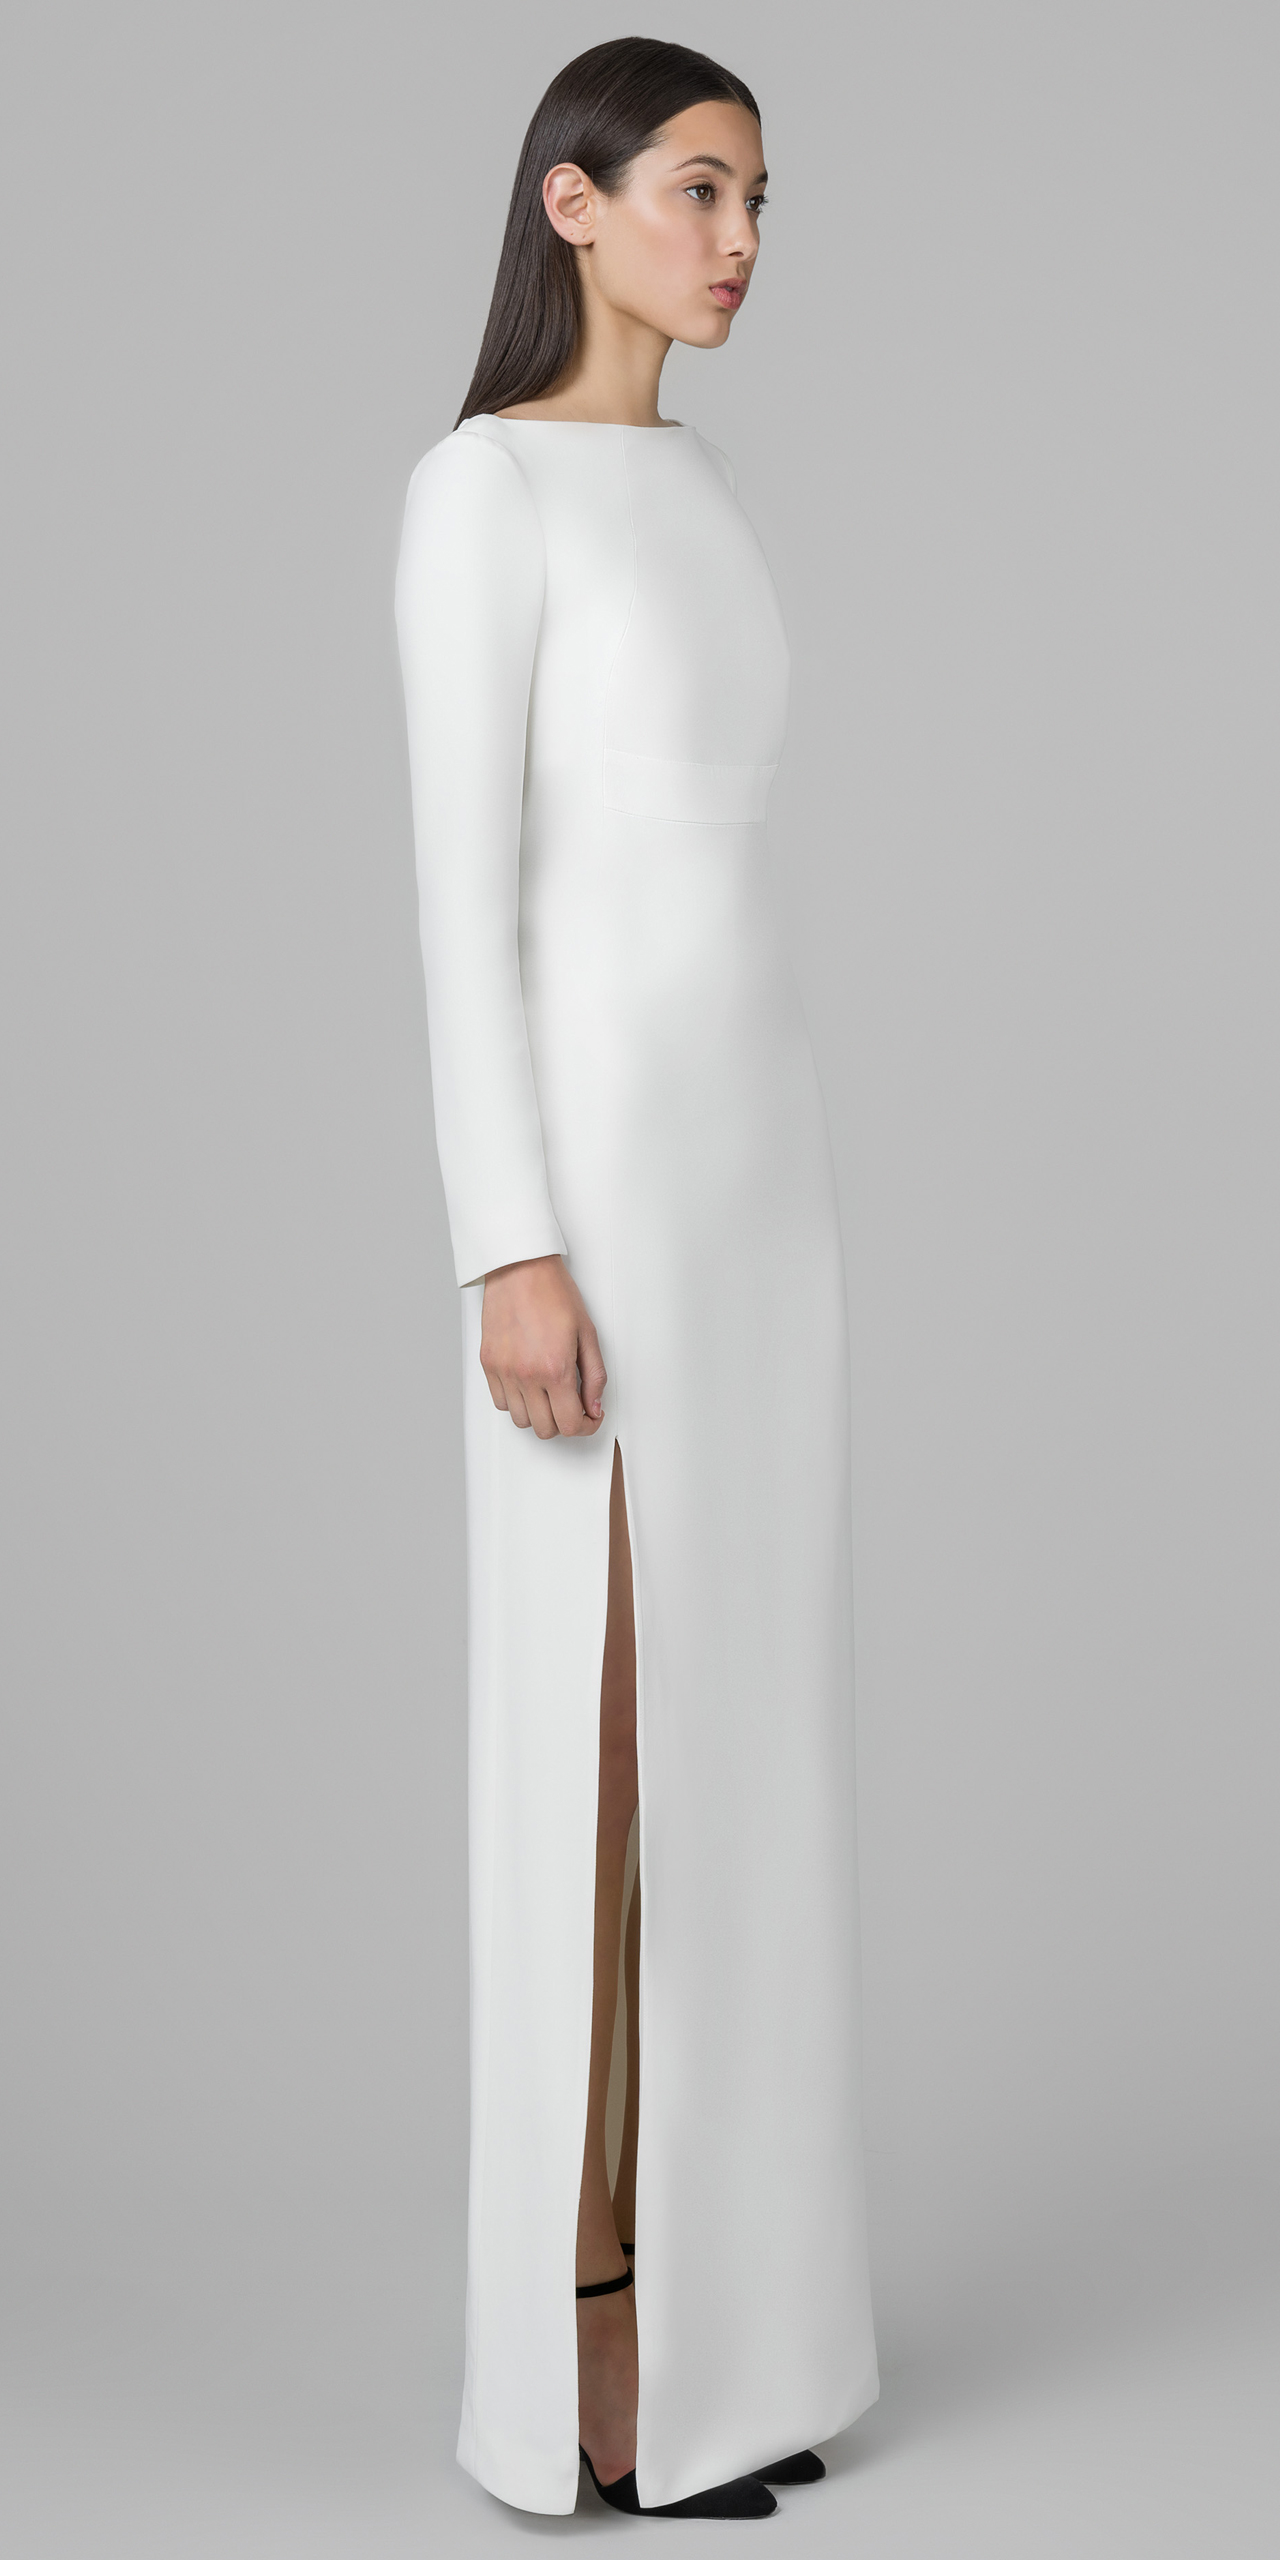 Lyst - Kimora Lee Simmons Frosted Silk Evening Gown in White